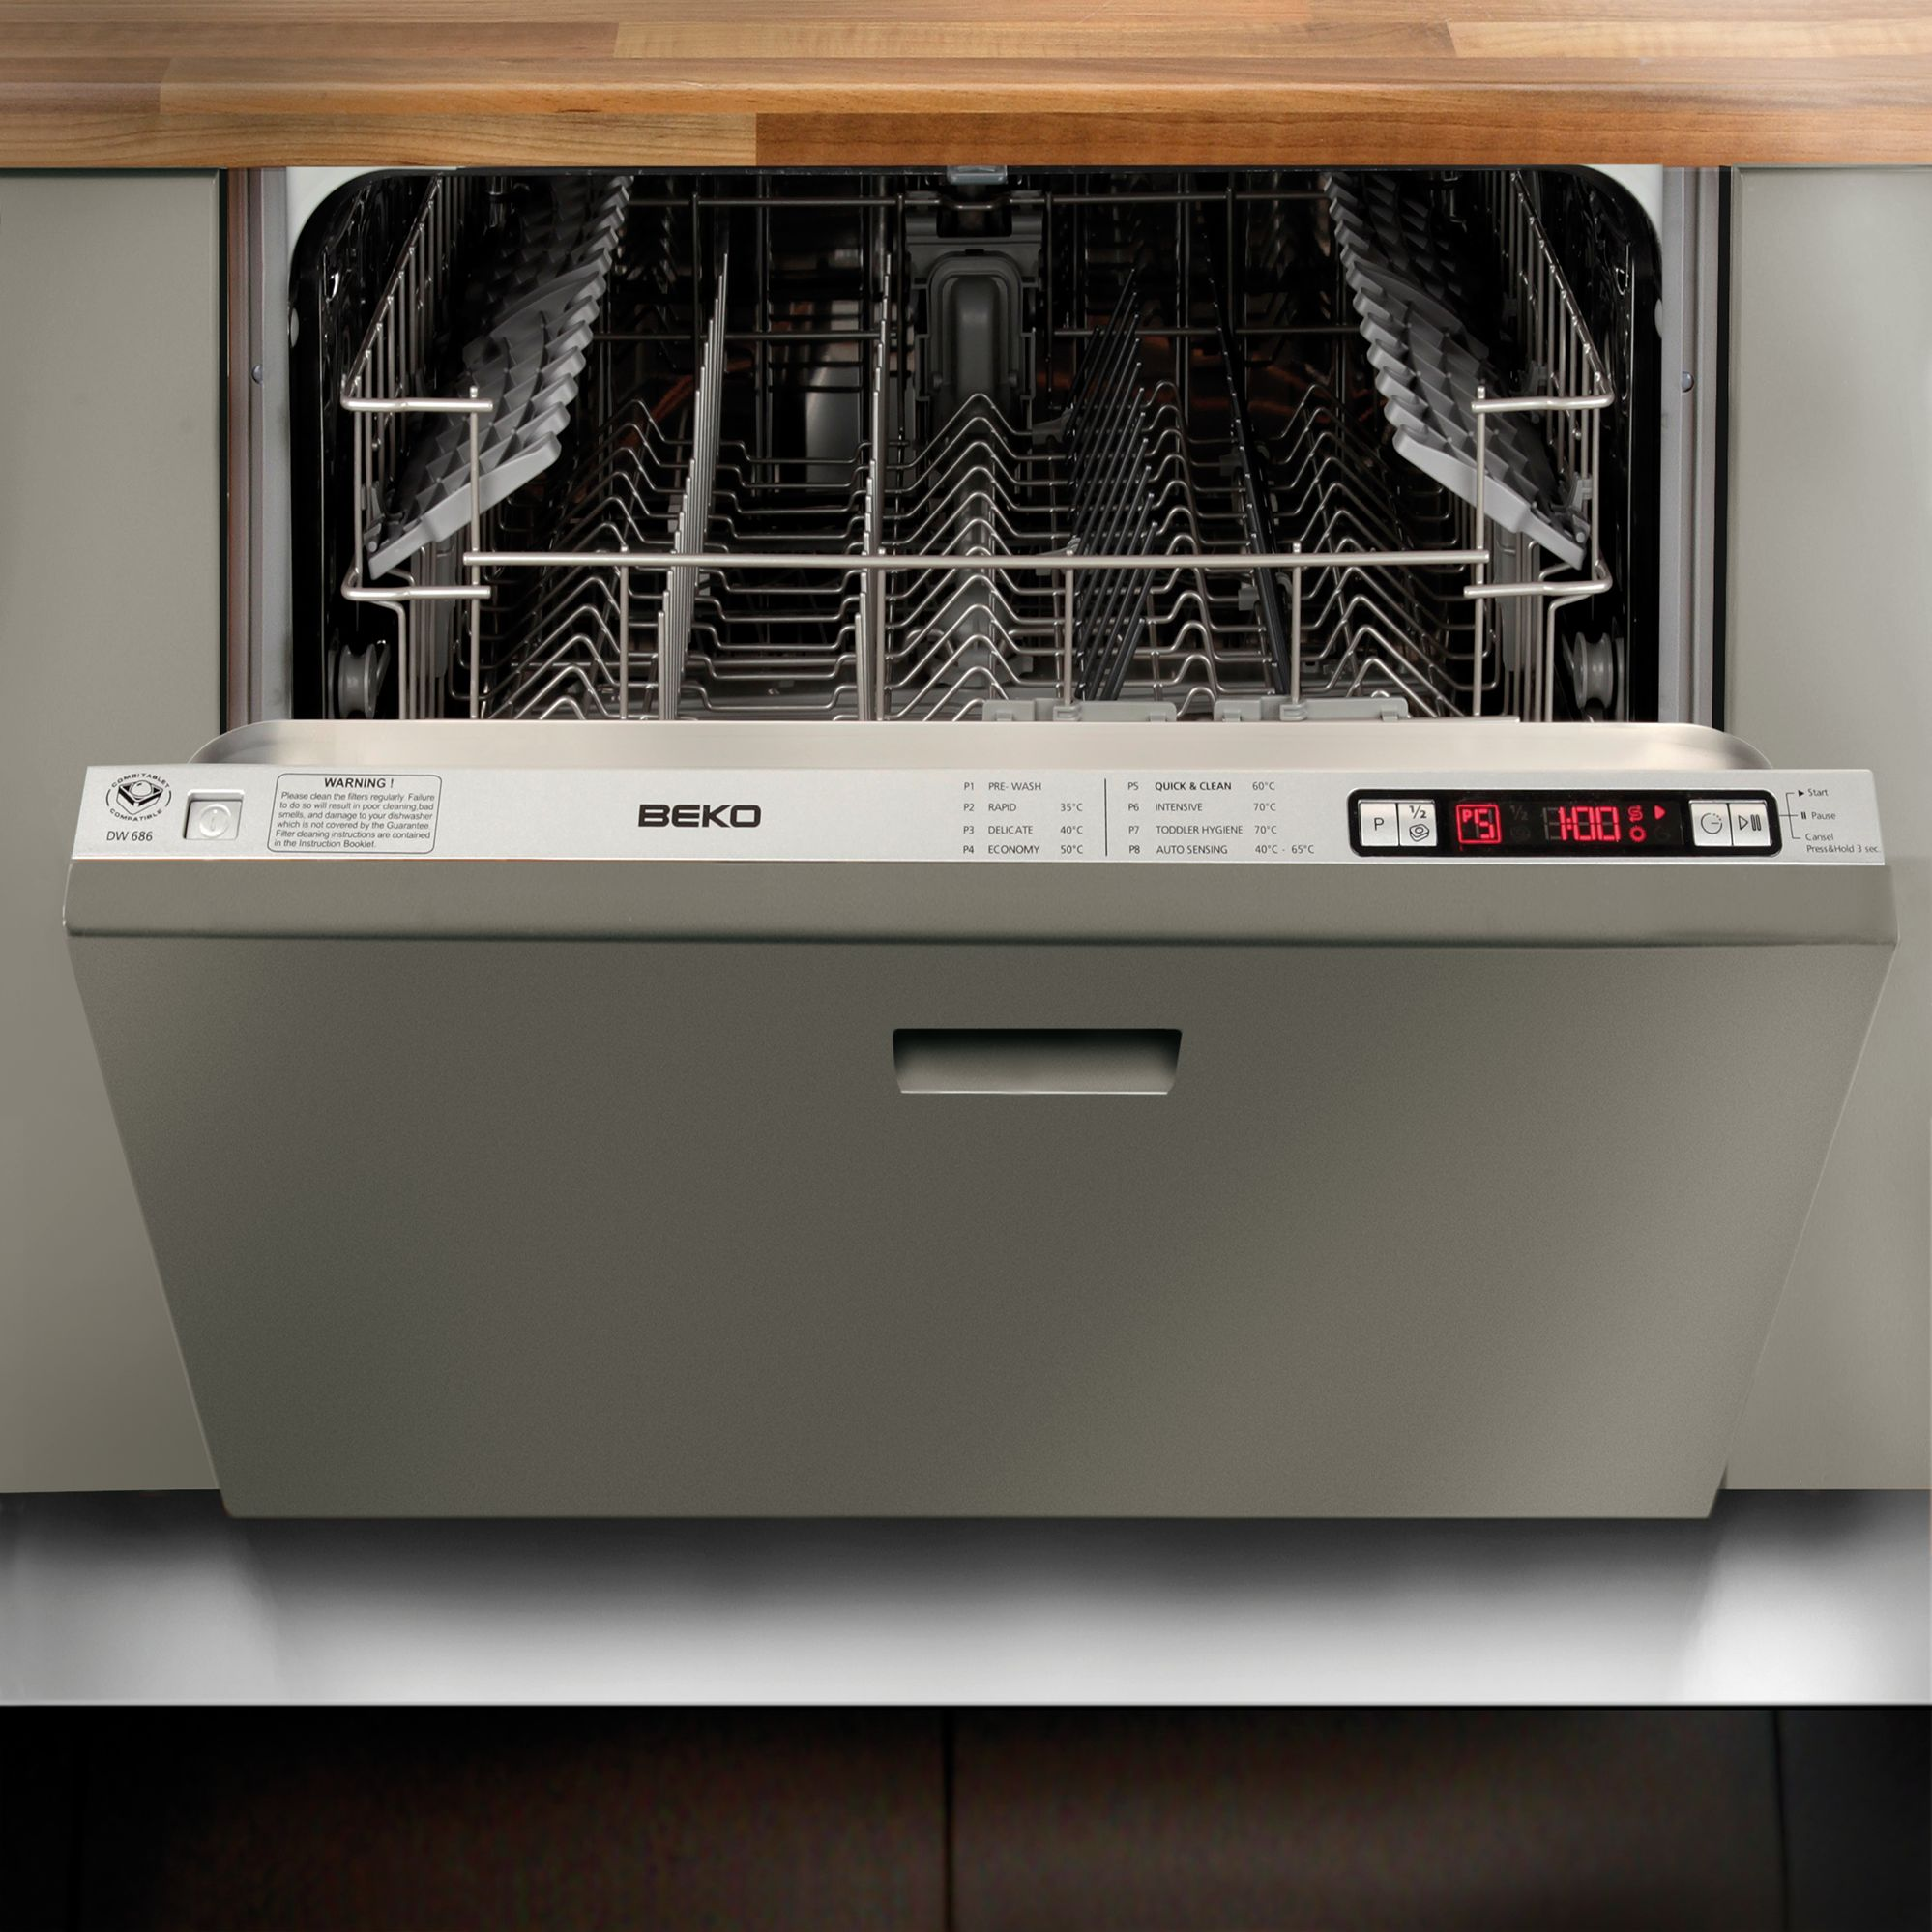 Beko DW686 Integrated Dishwasher